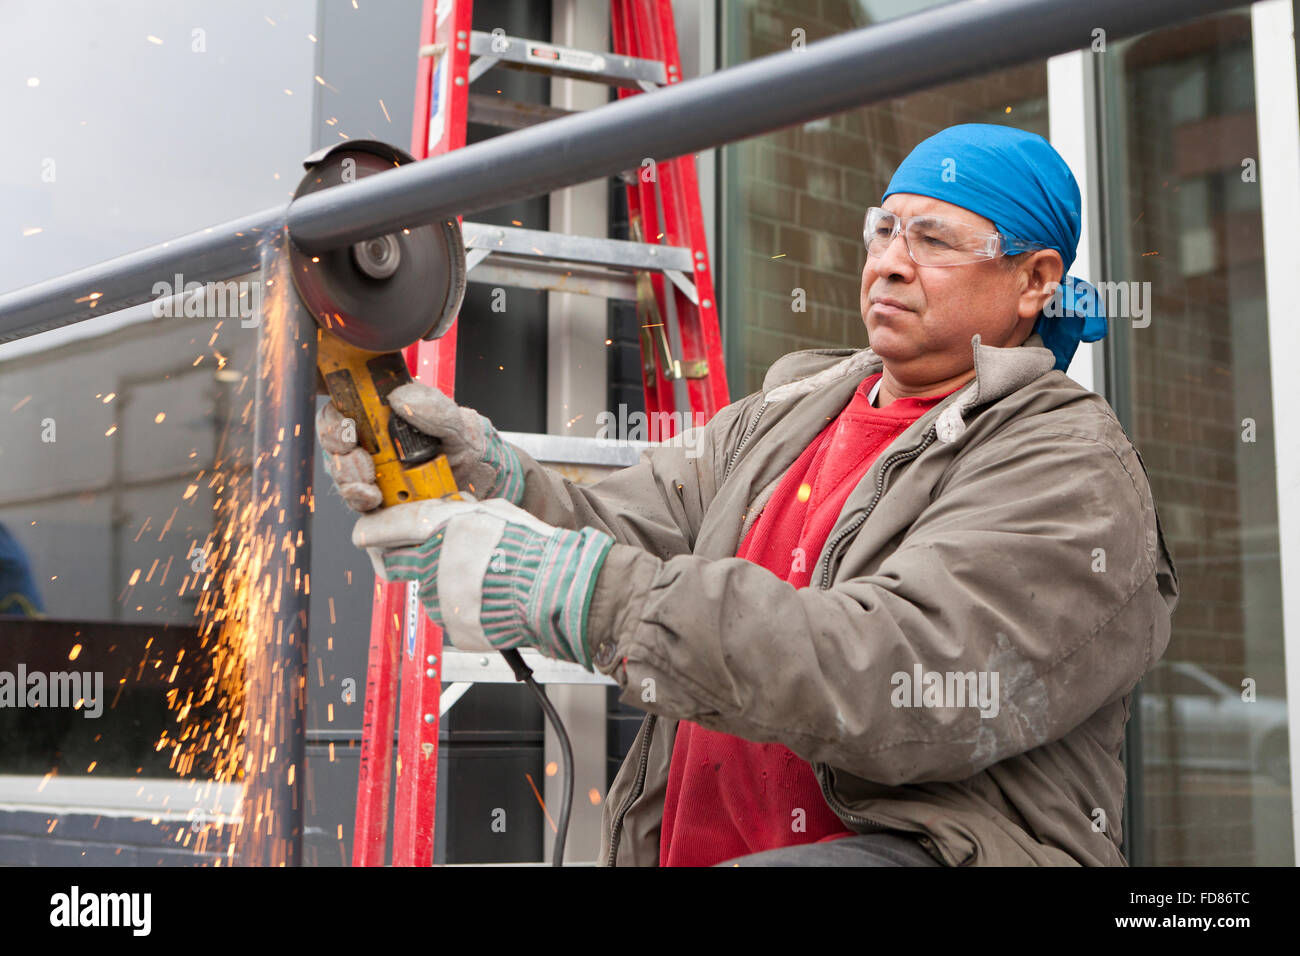 Construction worker cutting steel pipe with angle grinder tool - USA - Stock Image